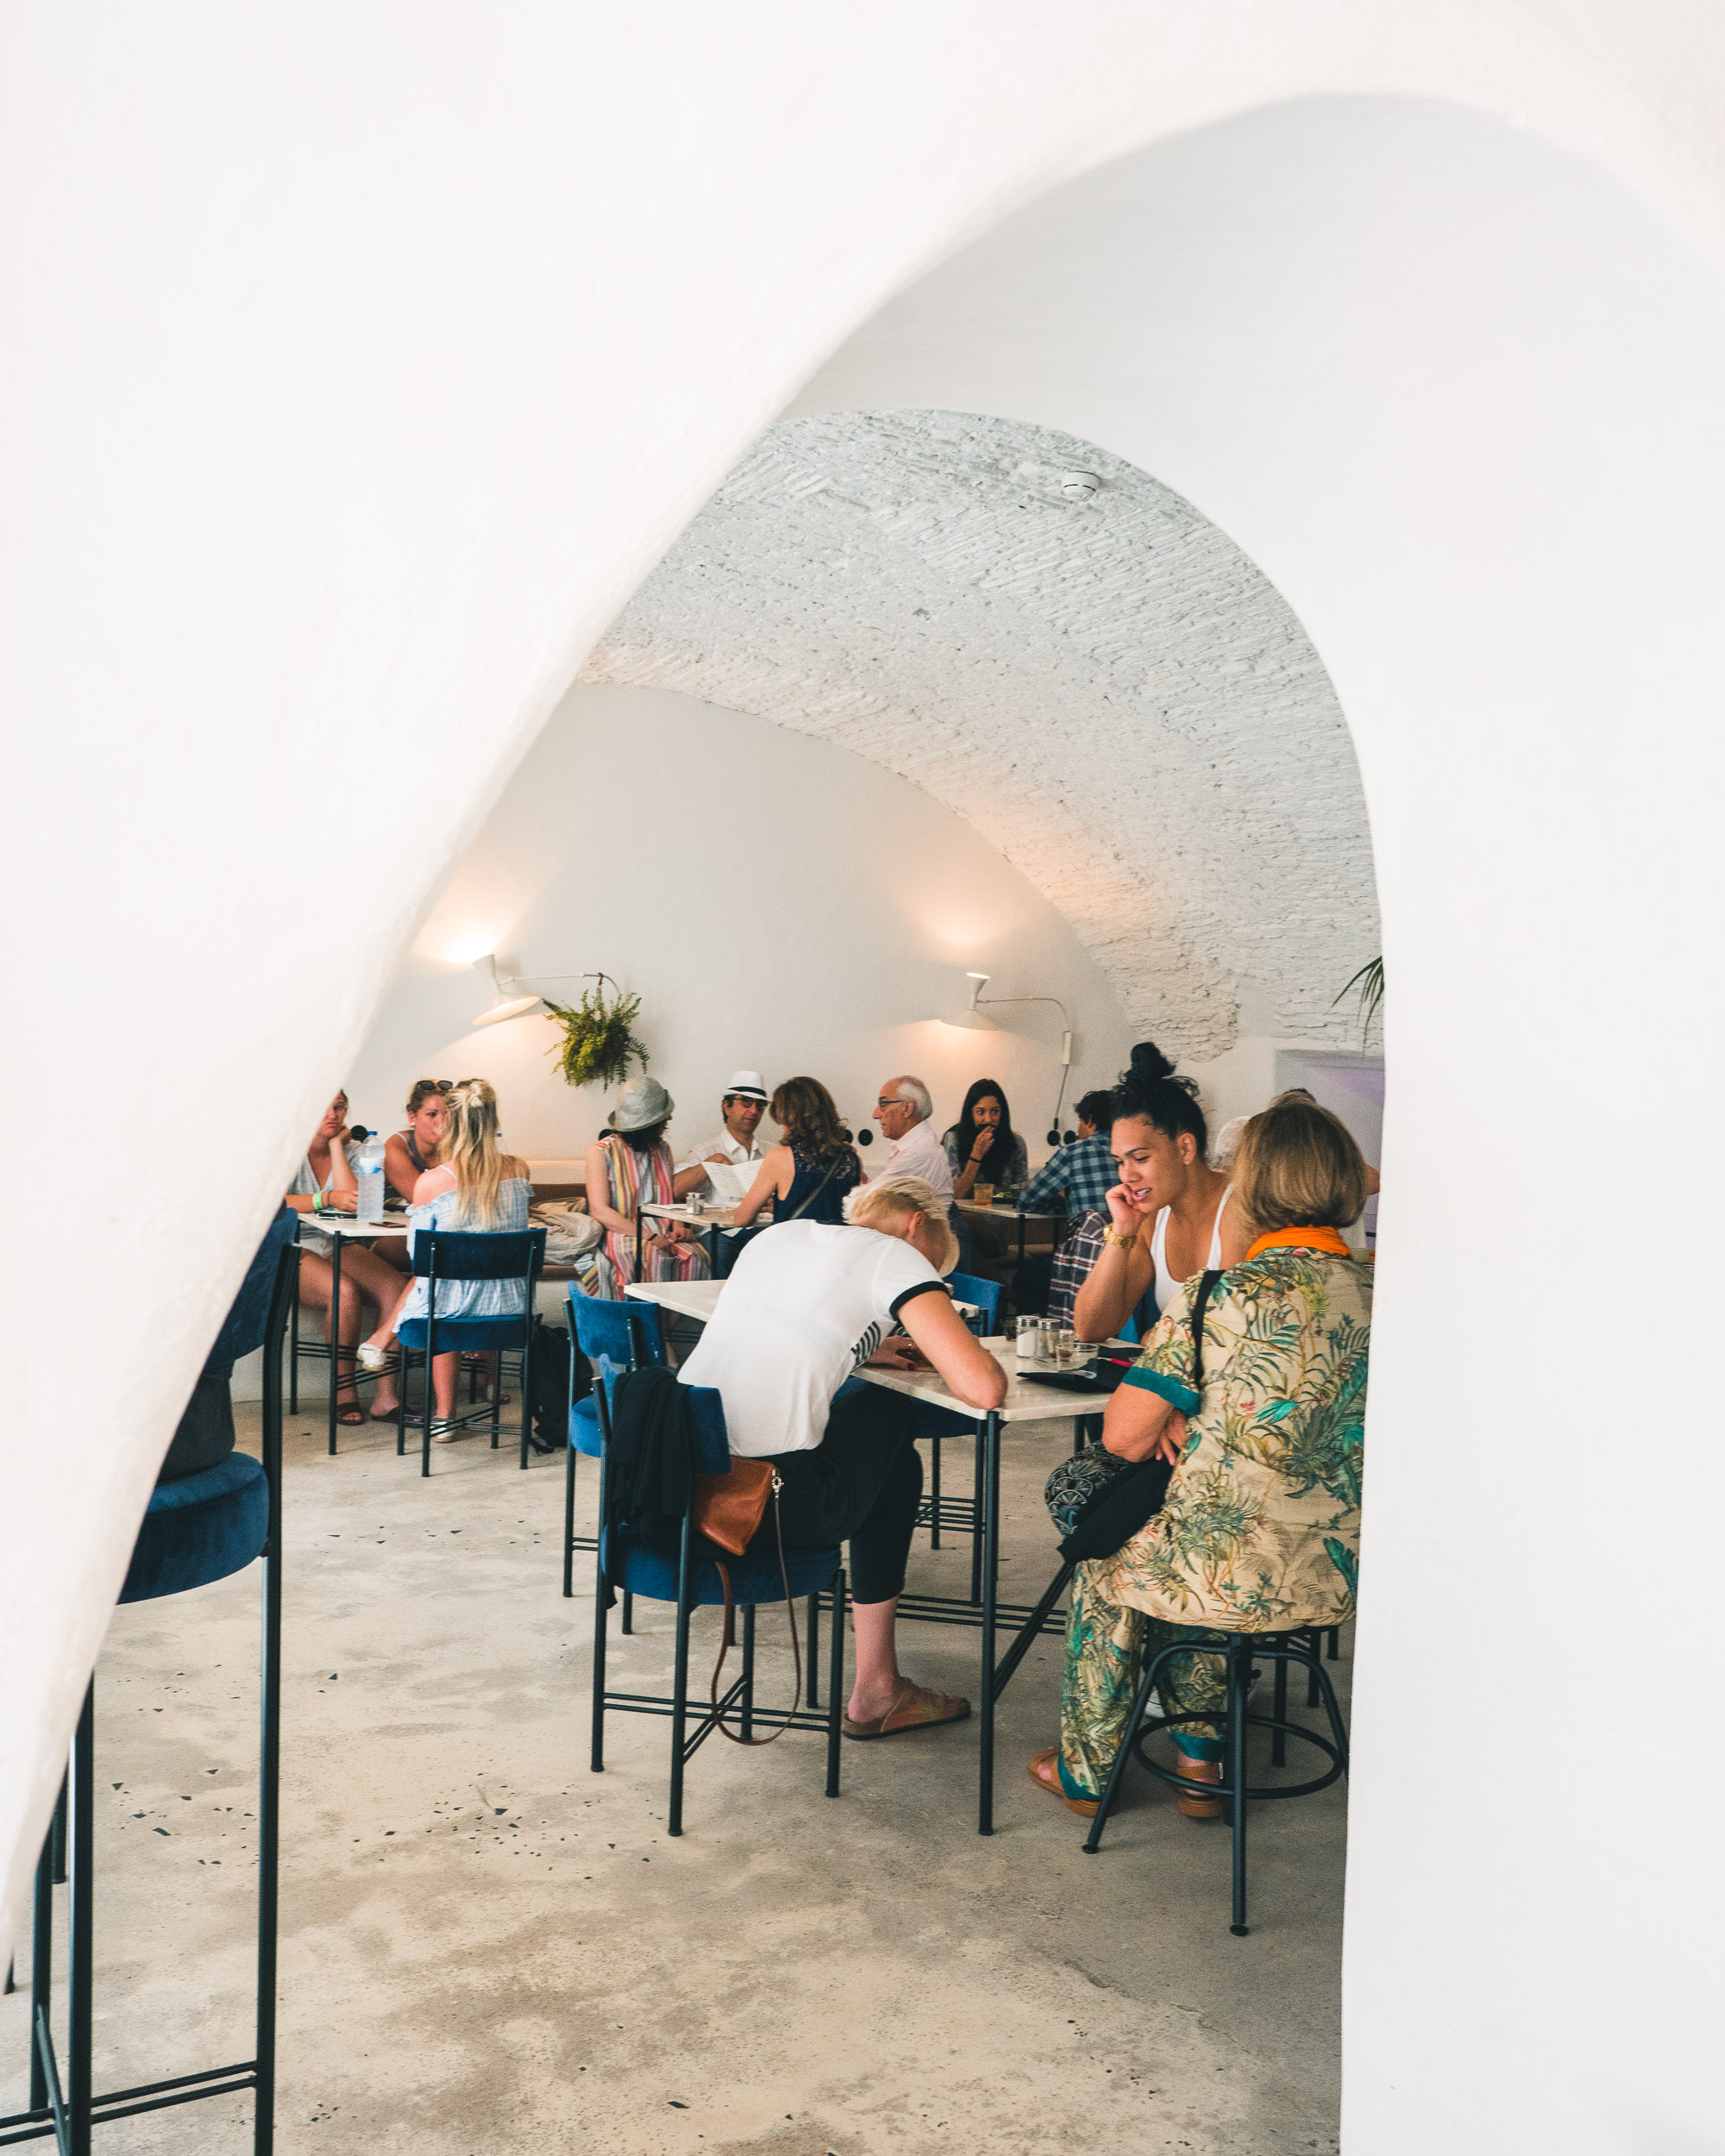 Photogenic brunch at Dear Breakfast in Lisbon, Portugal | Lisbon Travel Guide via Find Us Lost